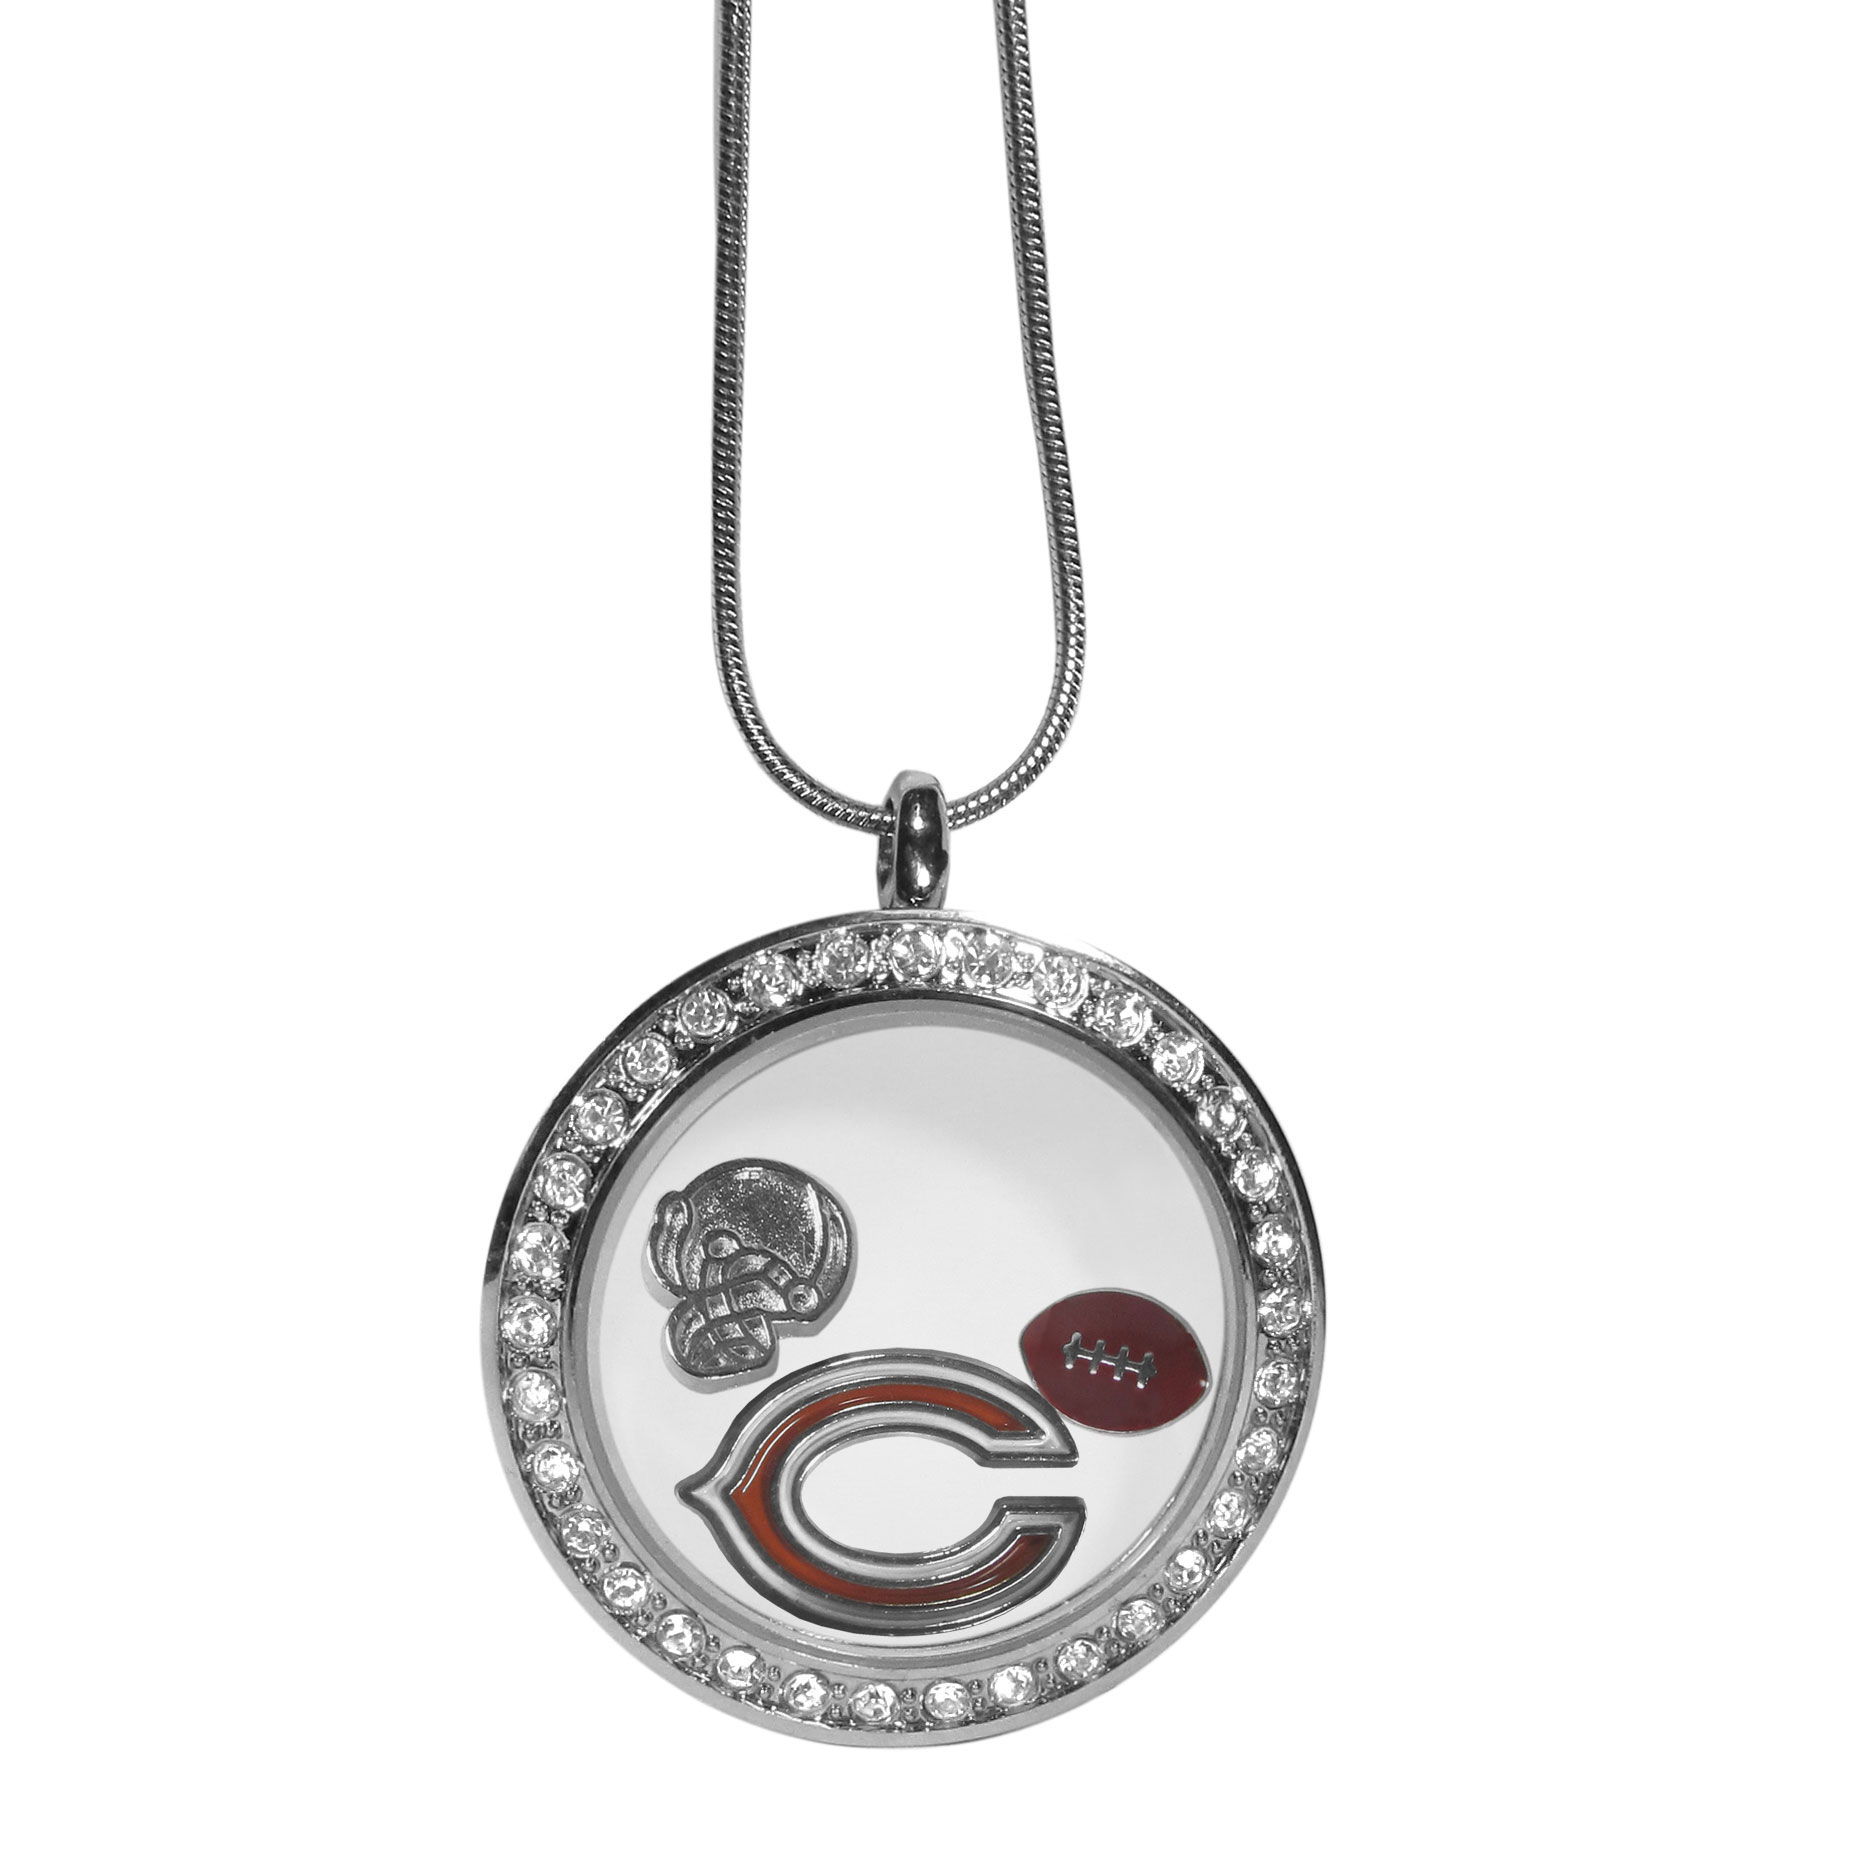 Cincinnati Bengals Locket Necklace - We have taken the classic floating charm locket and combined with licensed sports charms to create a must have fan necklace. The necklace comes with 3 charms; 1 Cincinnati Bengals charm, one football charm and one helmet charm. The charms float in a beautiful locket that has a strong magnetic closure with a rhinestone border. The locket comes on an 18 inch snake chain with 2 inch extender.